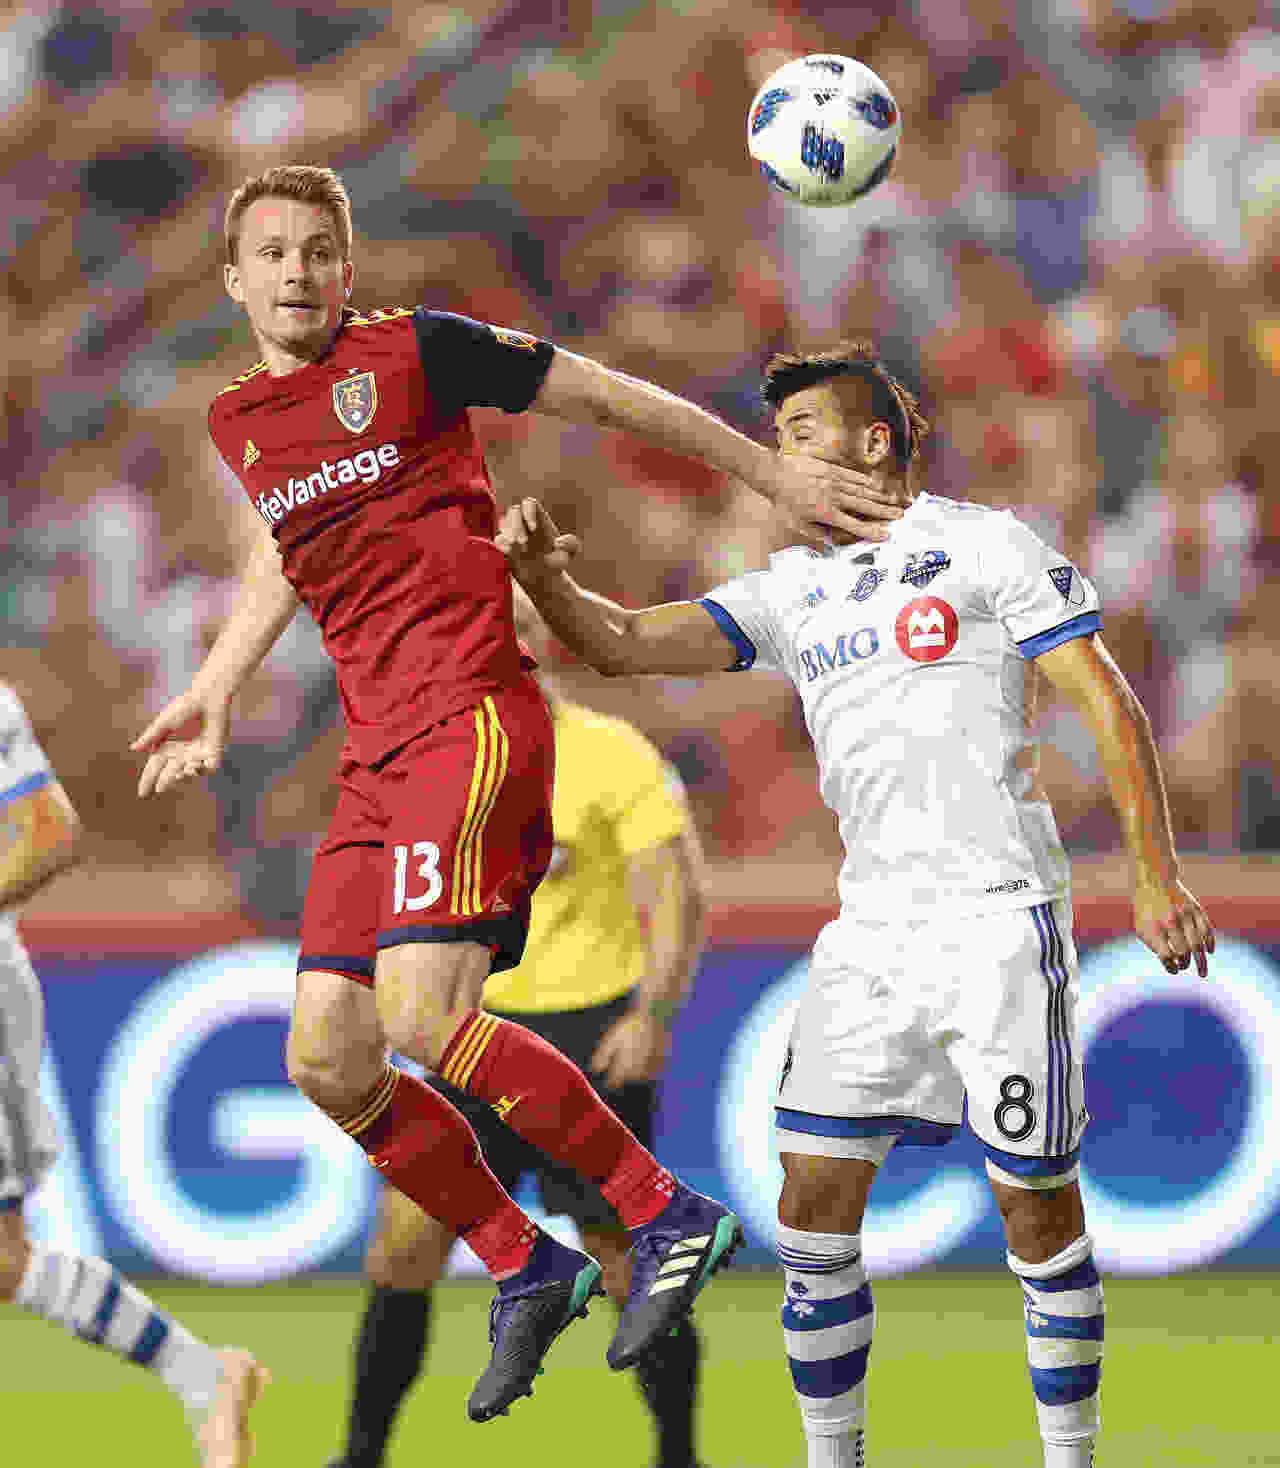 fd7e86d5b14 Real Salt Lake midfielder Nick Besler (13) and Montreal Impact midfielder  Saphir Taider (8) compete in Sandy on Saturday, Aug. 11, 2018.